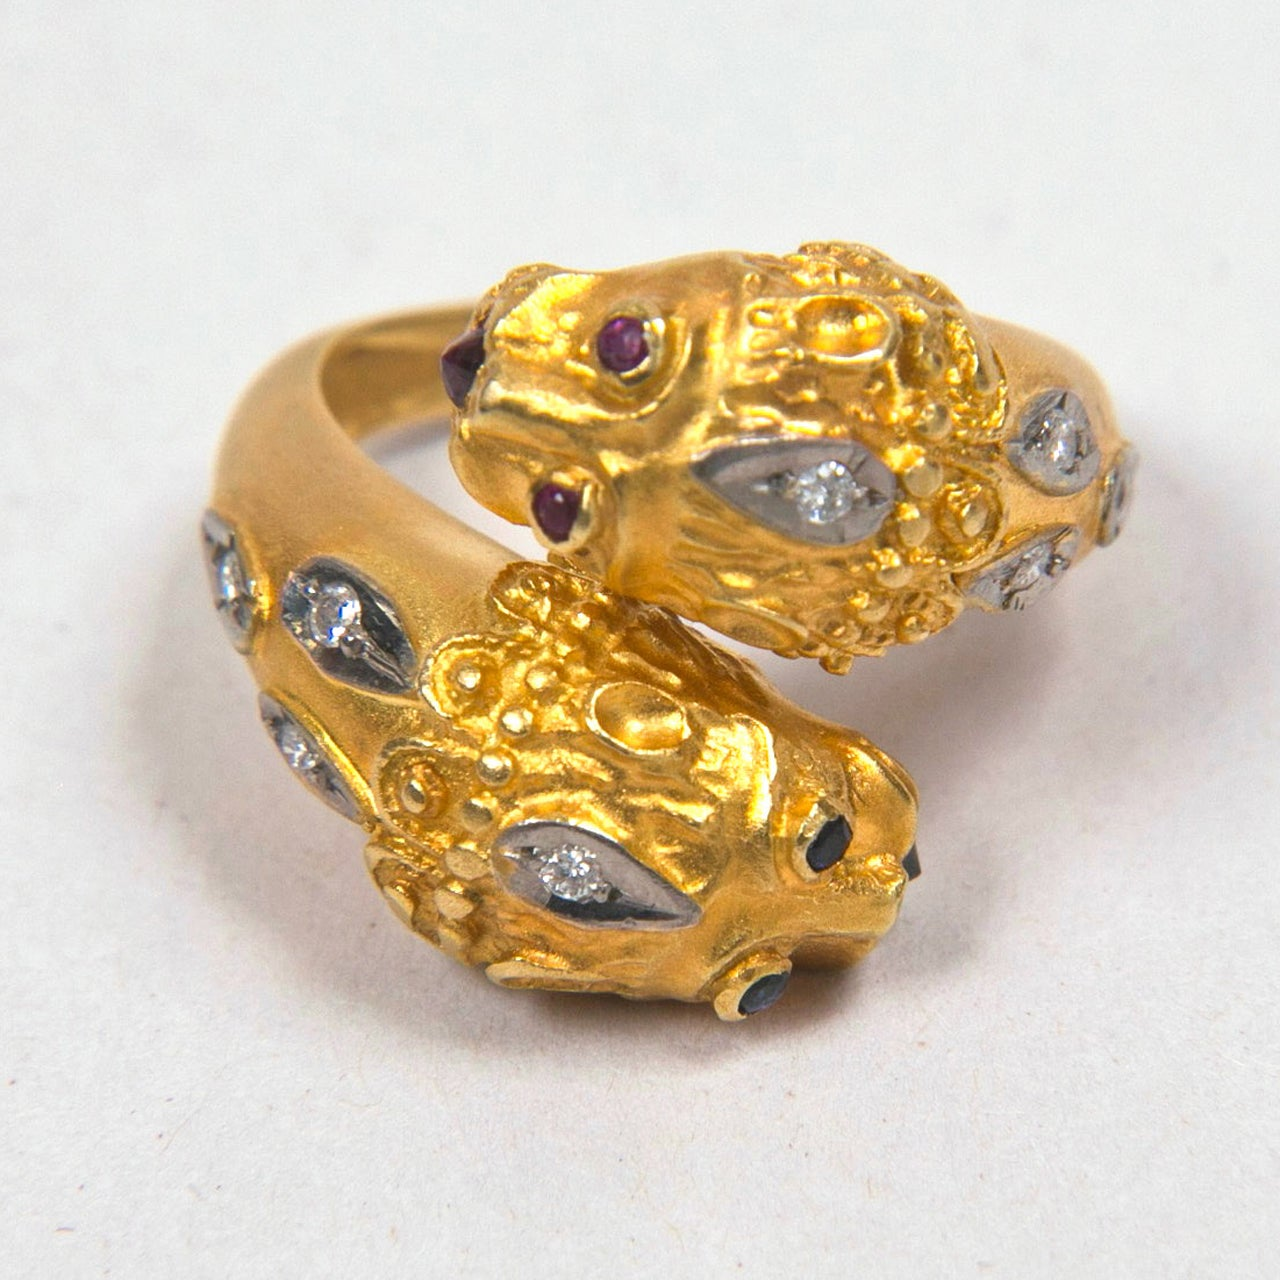 1960's Hand Made Double Lion 18K Gold Ring With Diamonds, Rubies,